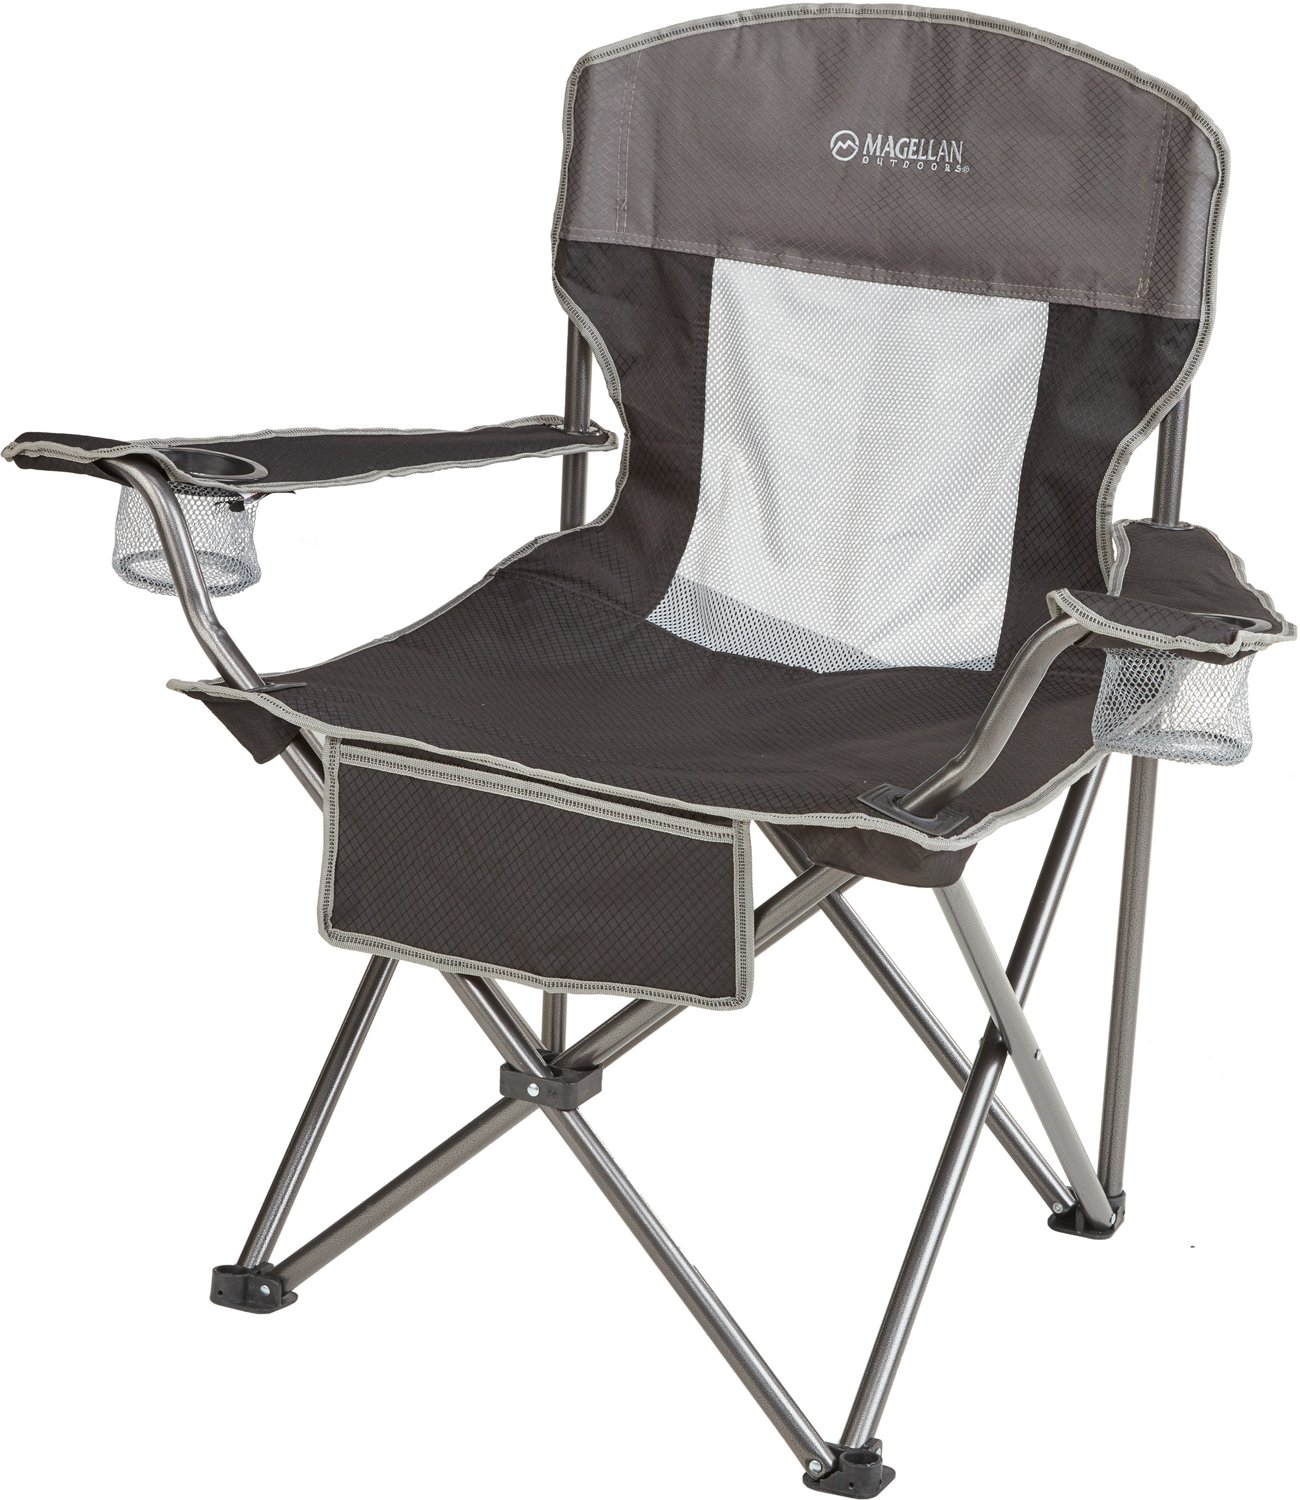 big and tall hunting chairs chair back covers dunelm magellan outdoors comfort mesh academy